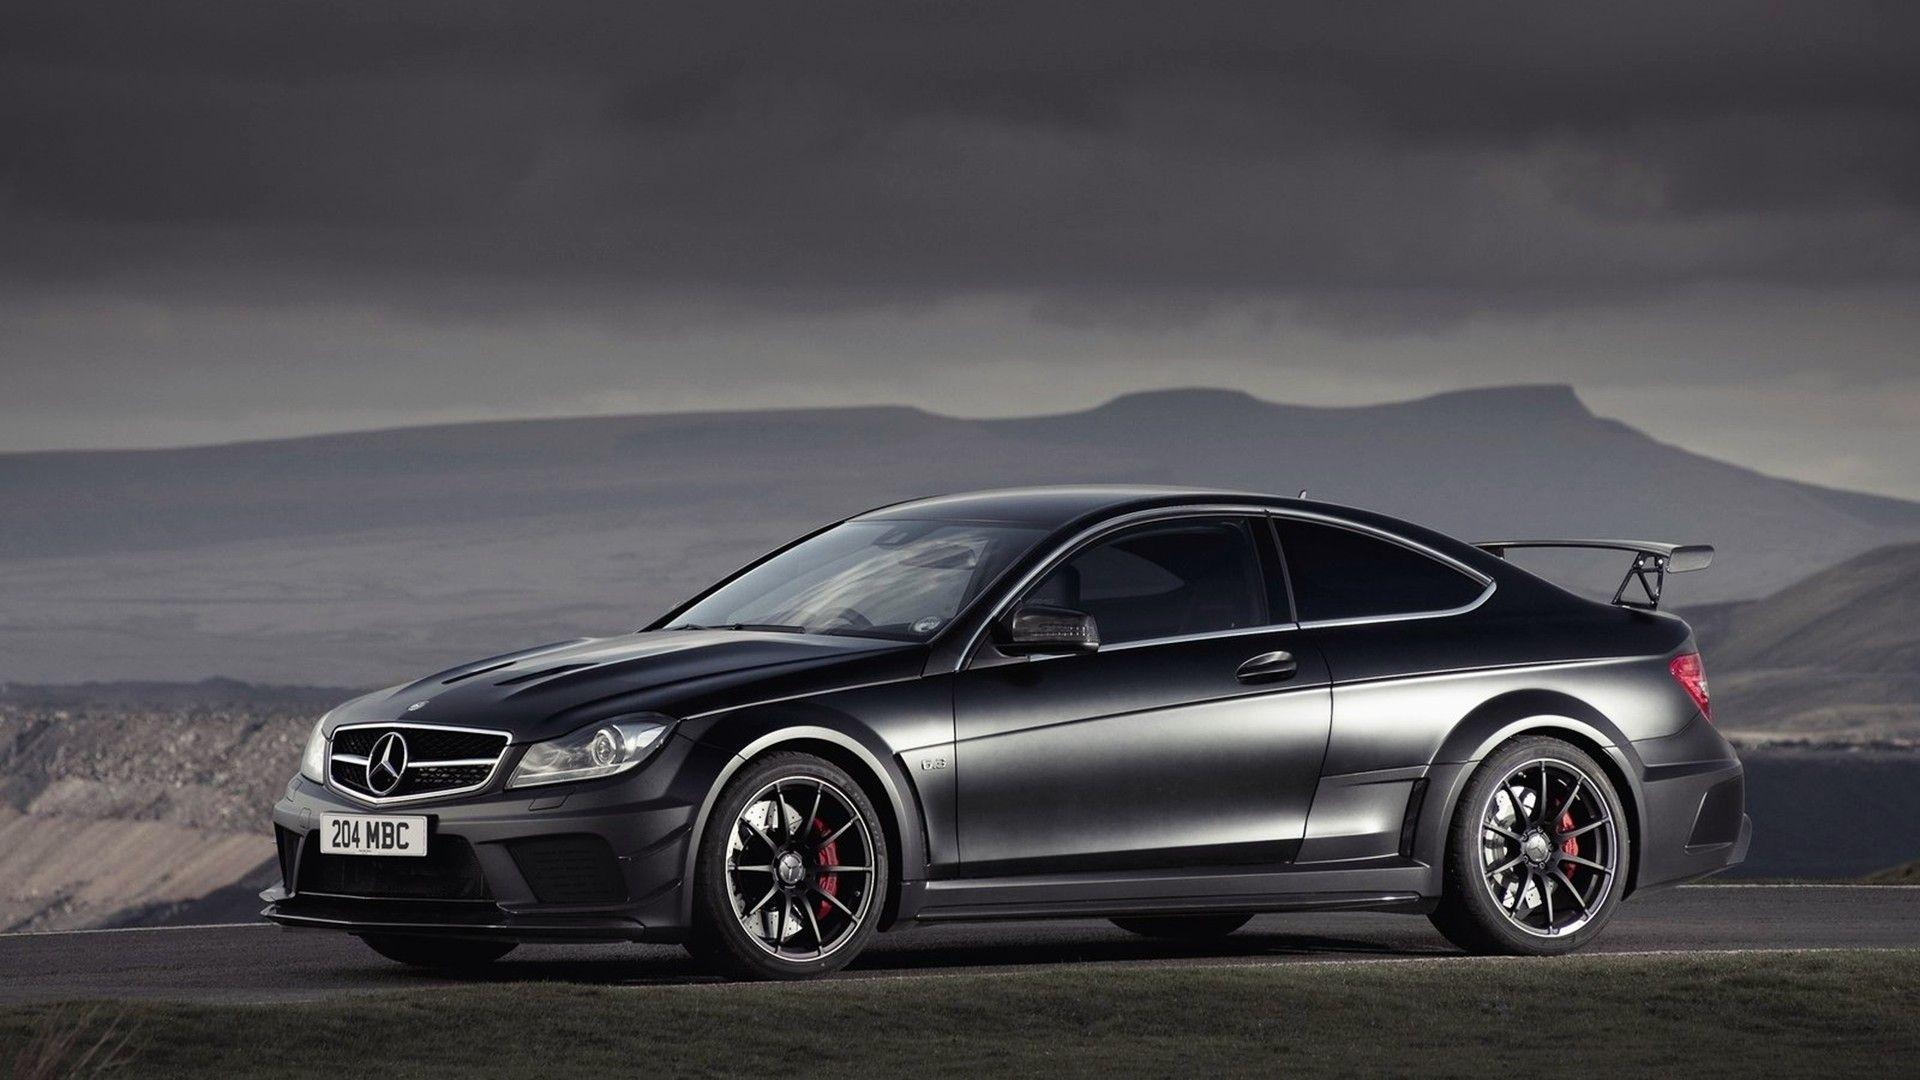 Mercedes amg wallpapers wallpaper cave for Mercedes benz amg logo